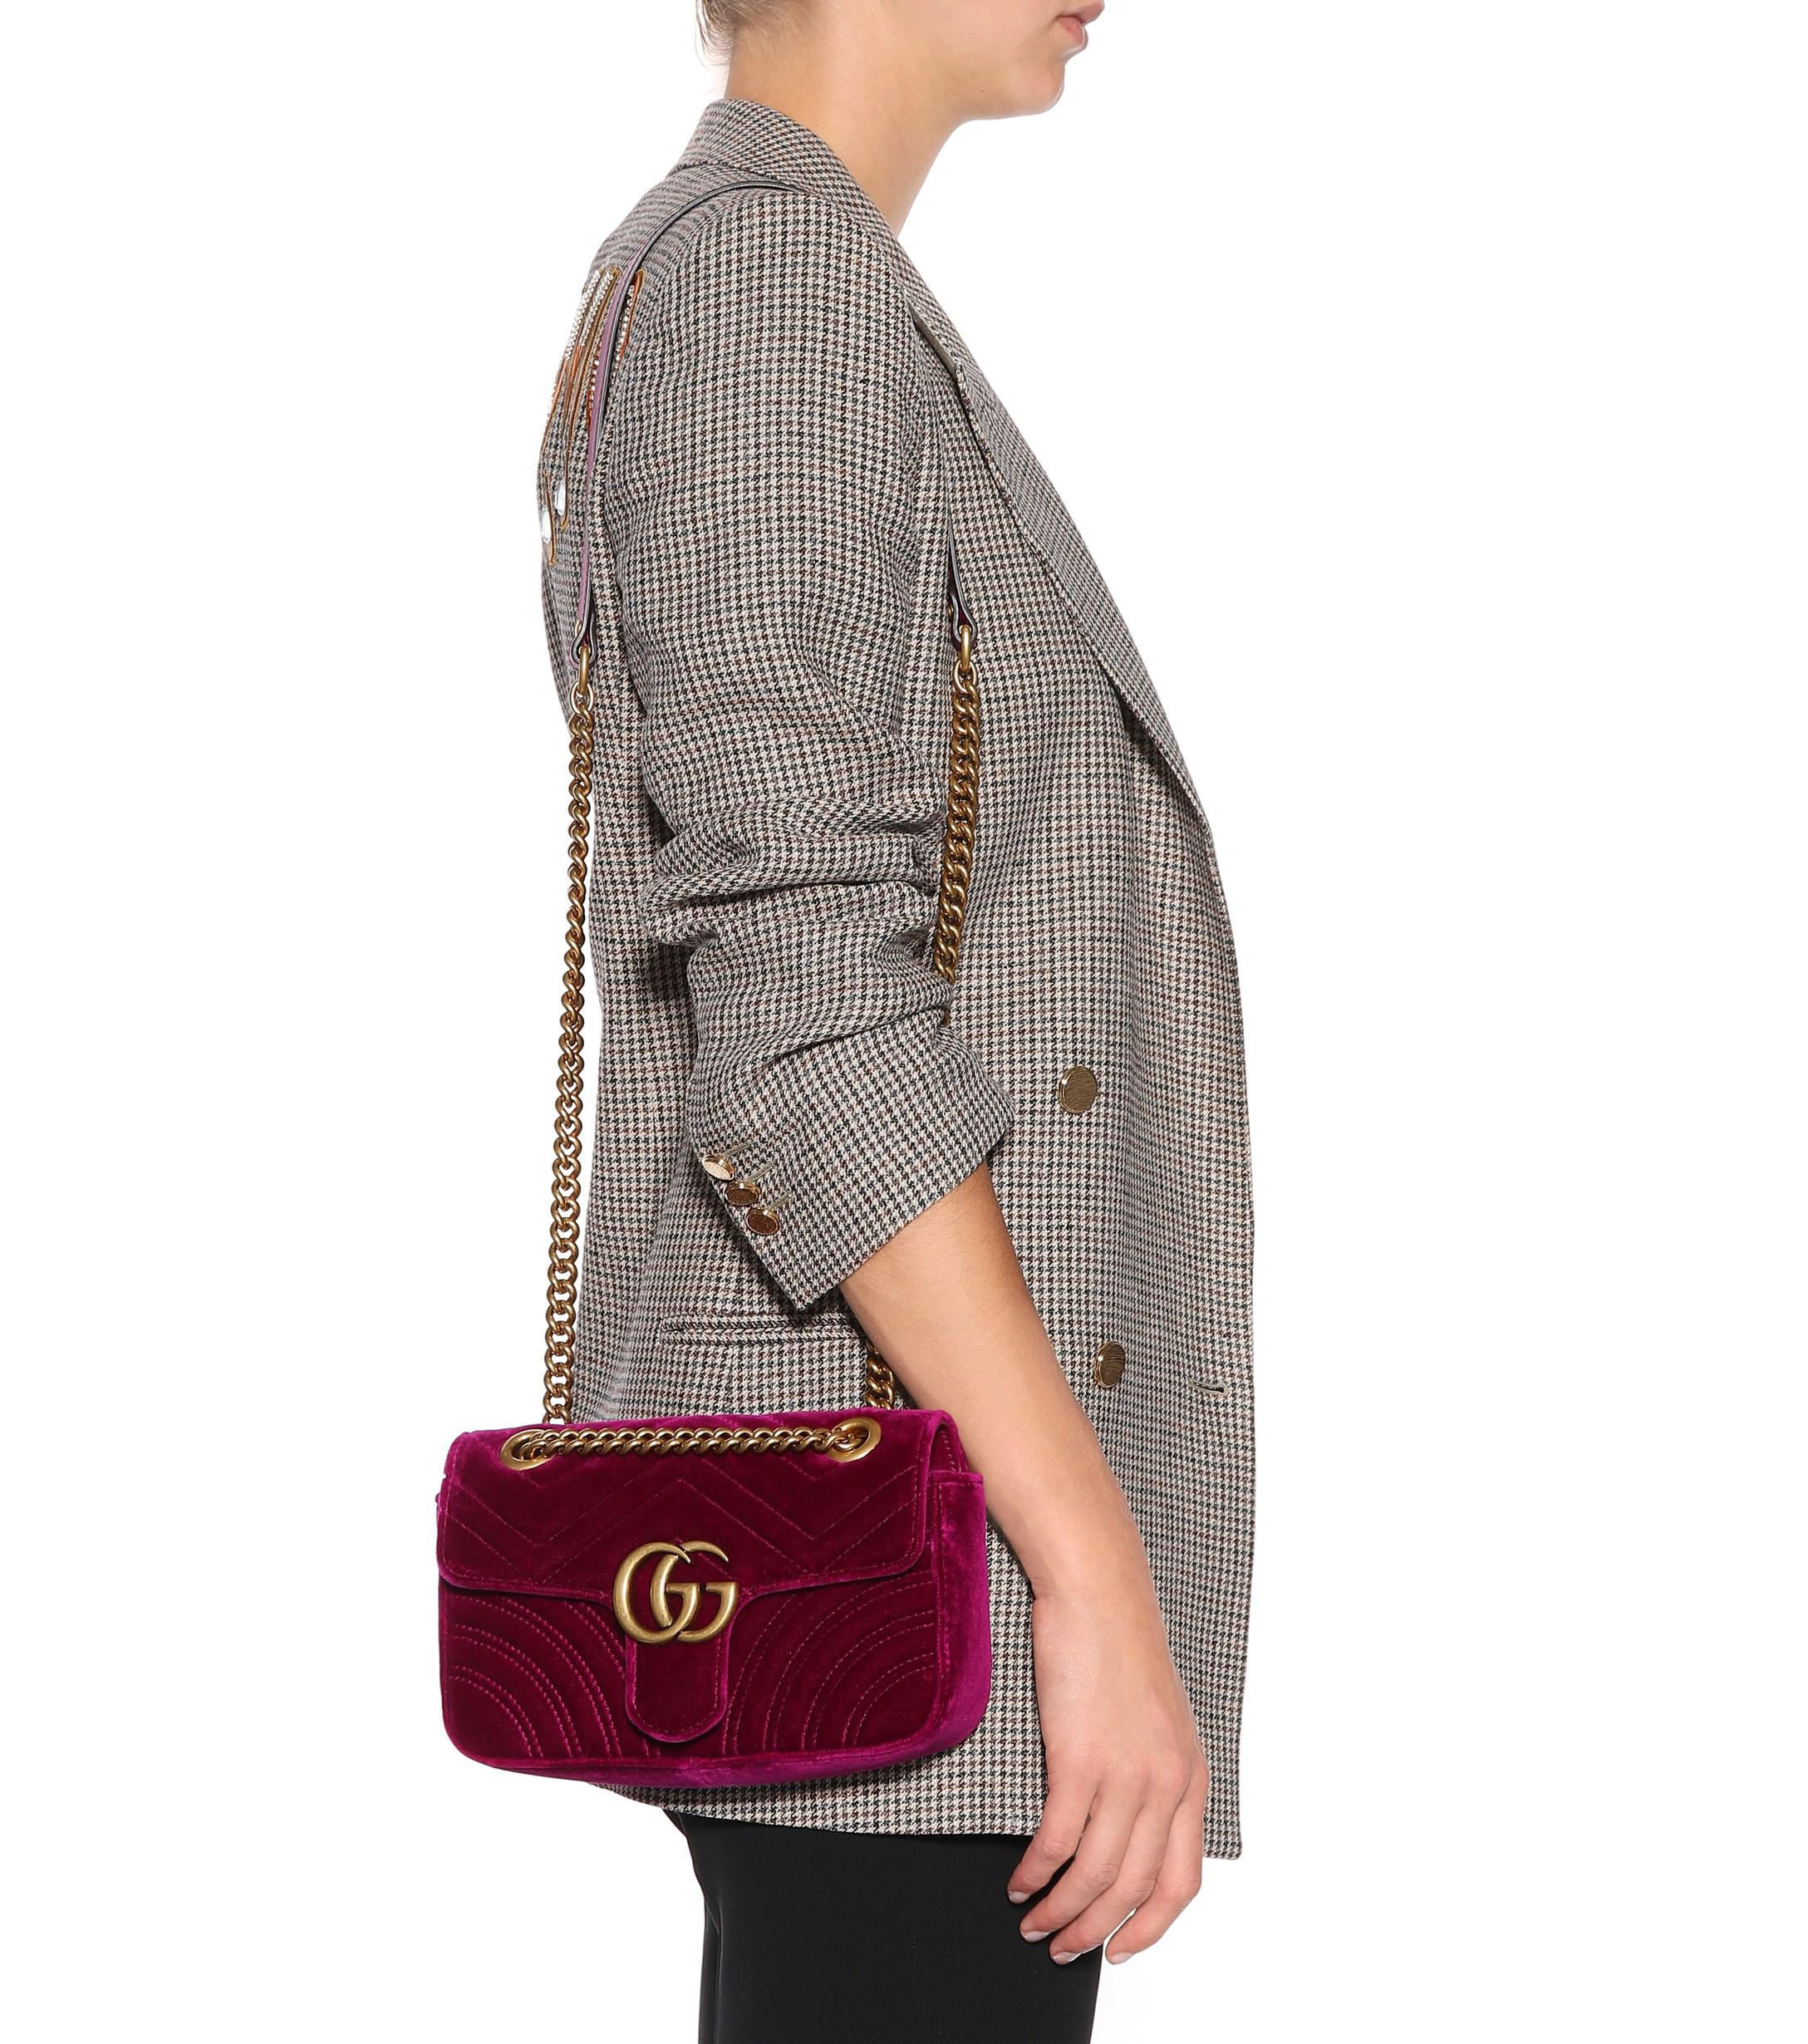 8635612b180b Gucci - Purple GG Marmont Mini Velvet Shoulder Bag - Lyst. View fullscreen